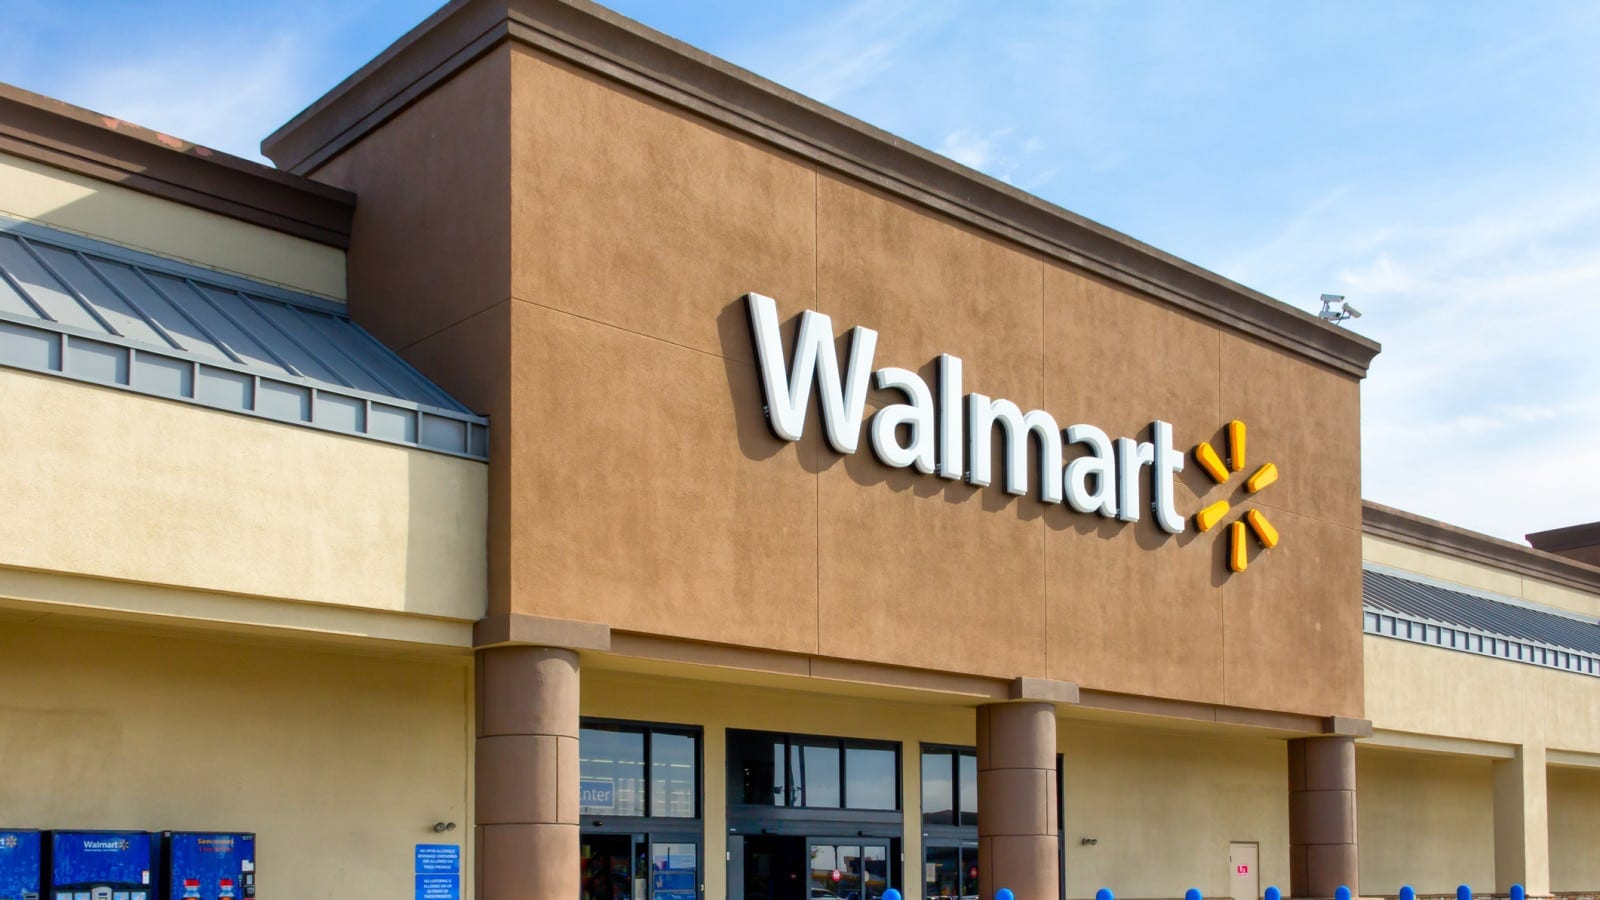 Wal-Mart facing another class action suit